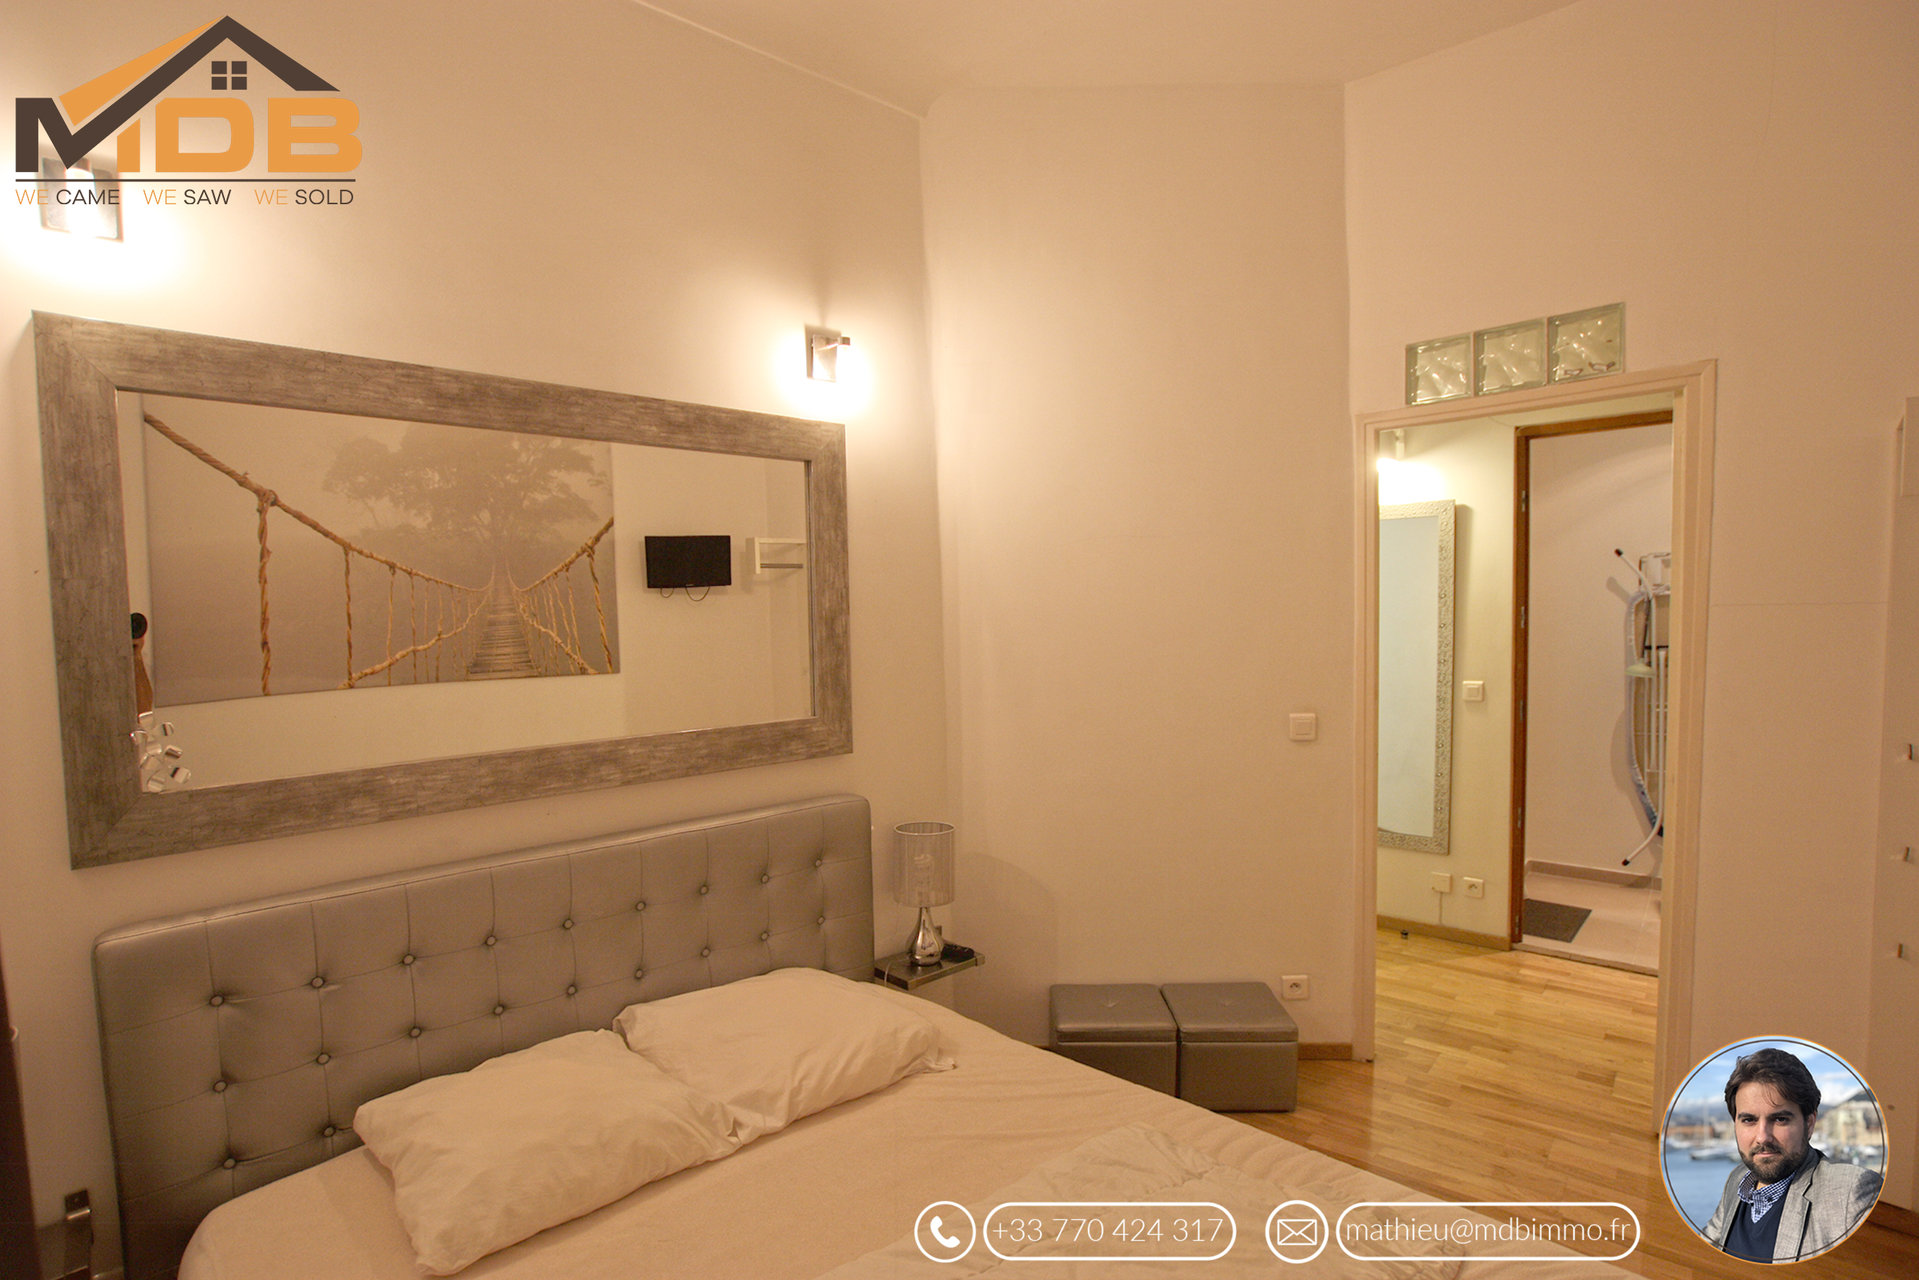 Vieux-Nice - one bedtroom apartment - Ideal investment!